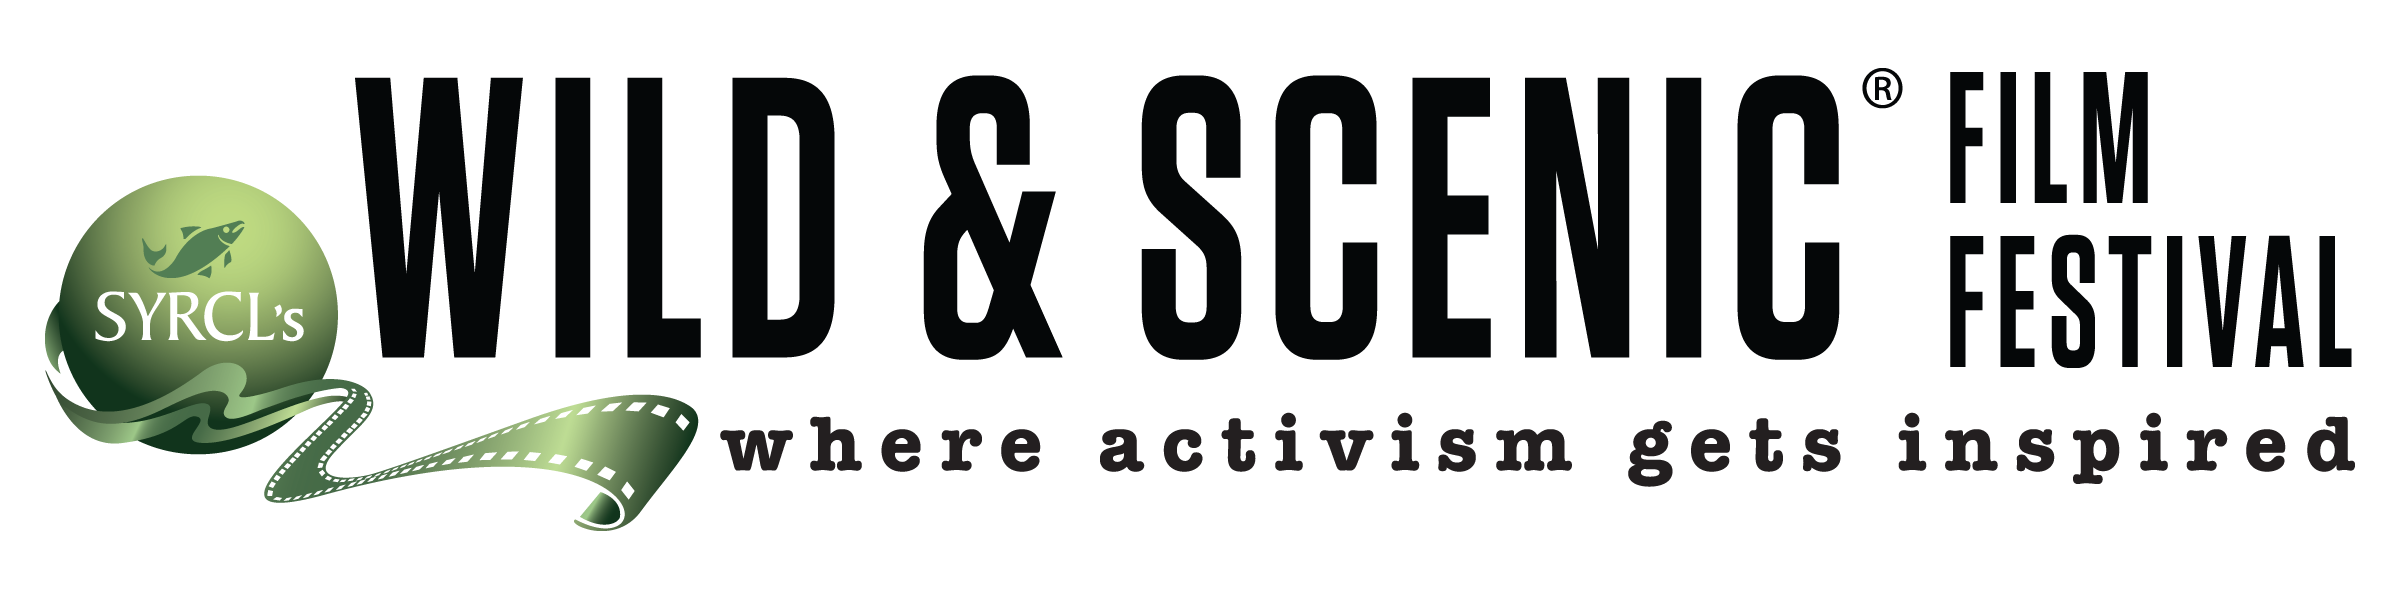 Saguache County ScSeed Presents SYRCL's Wild & Scenic Film Festival On Tour